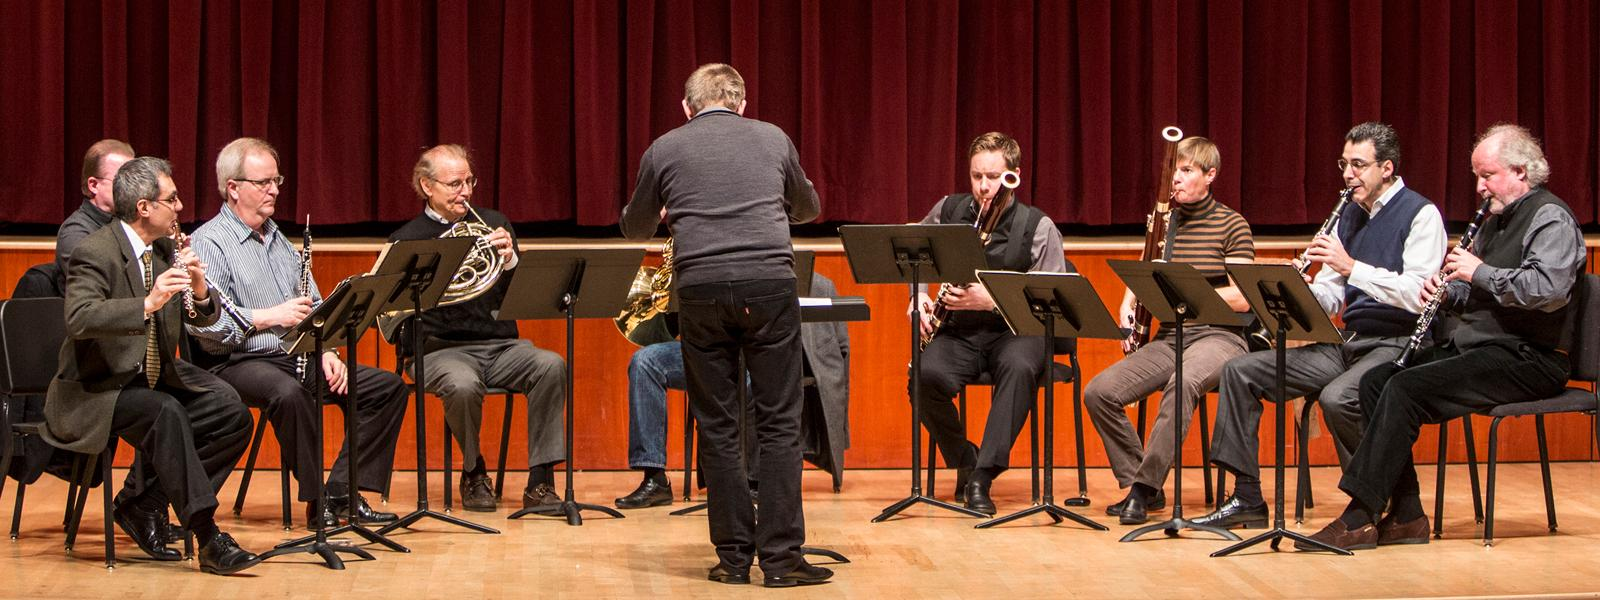 Chrysalis artists perform with the Berlin Philharmonic Wind Quartet / Photo: Brent LaFever